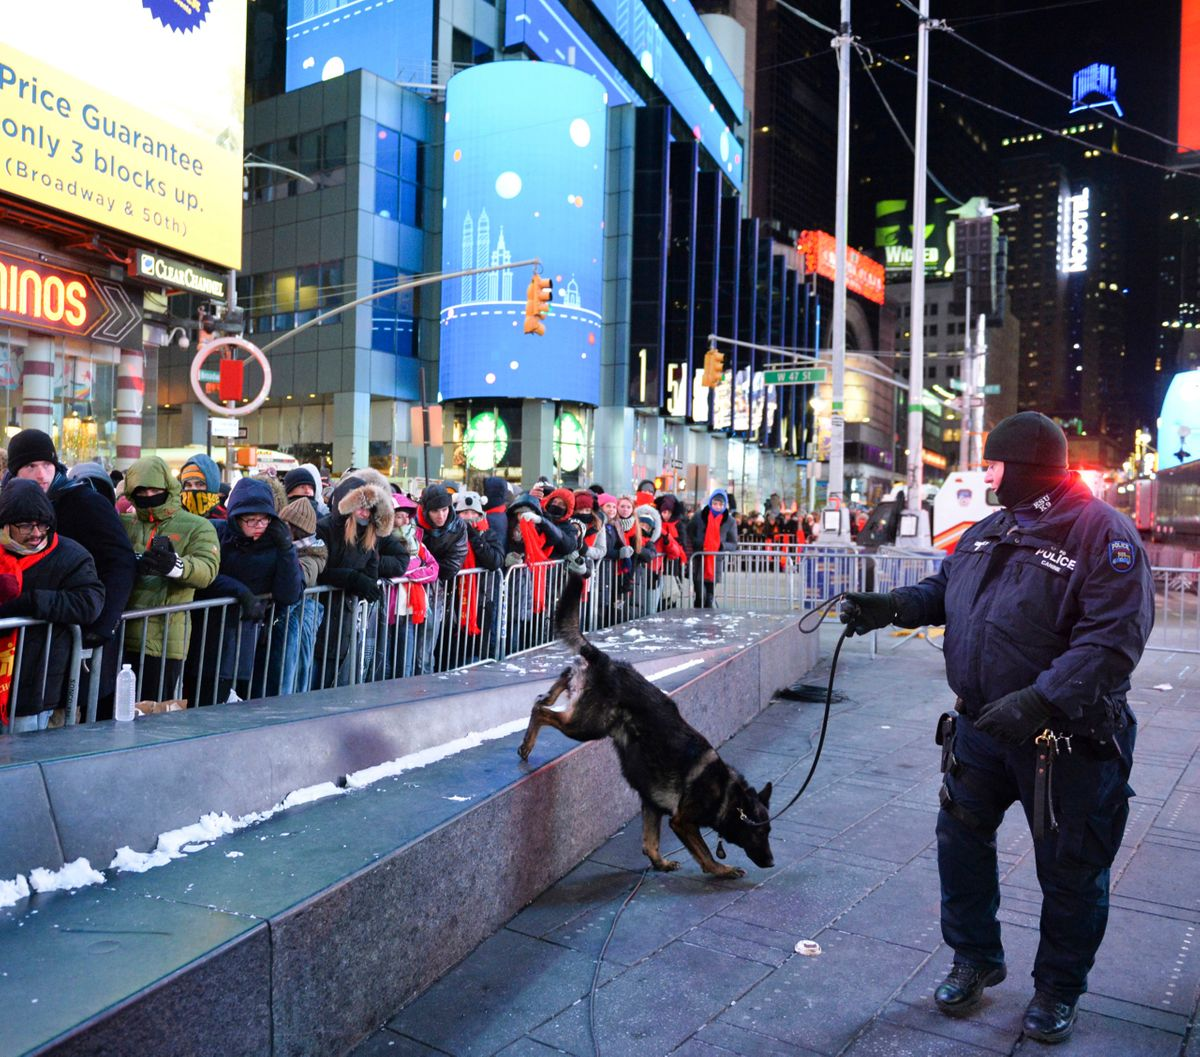 0312bd131 NYPD drone to oversee Times Square for New Year's Eve